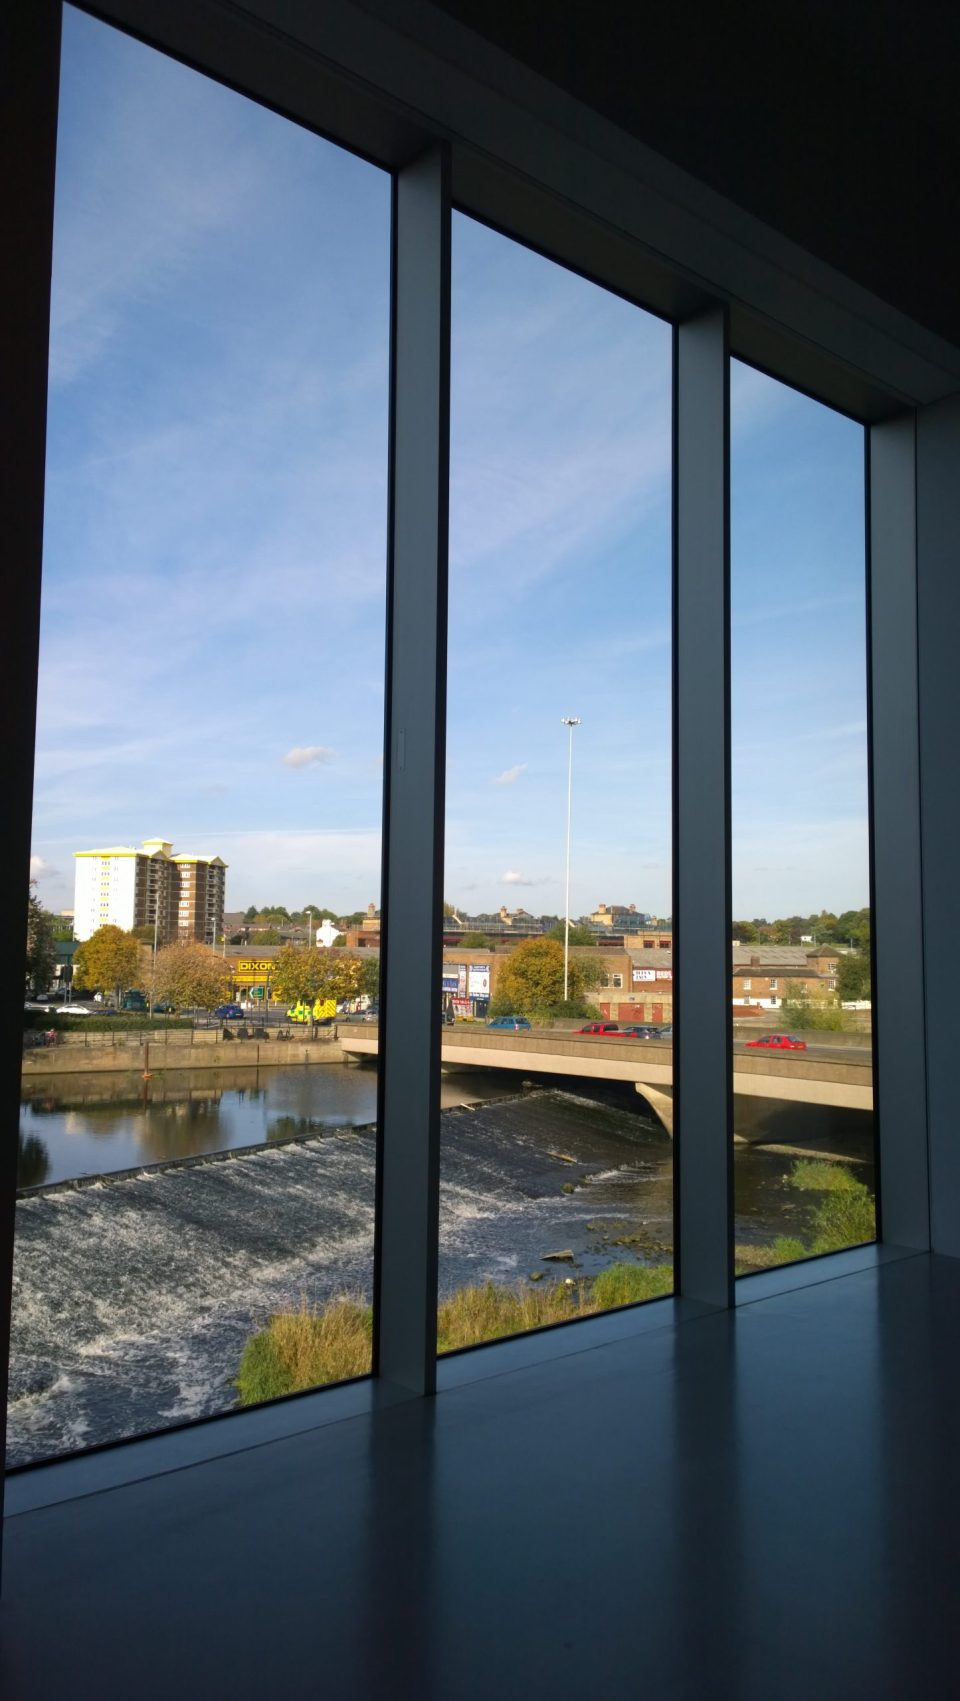 Giant Windows in the gallery looking out onto the River Calder